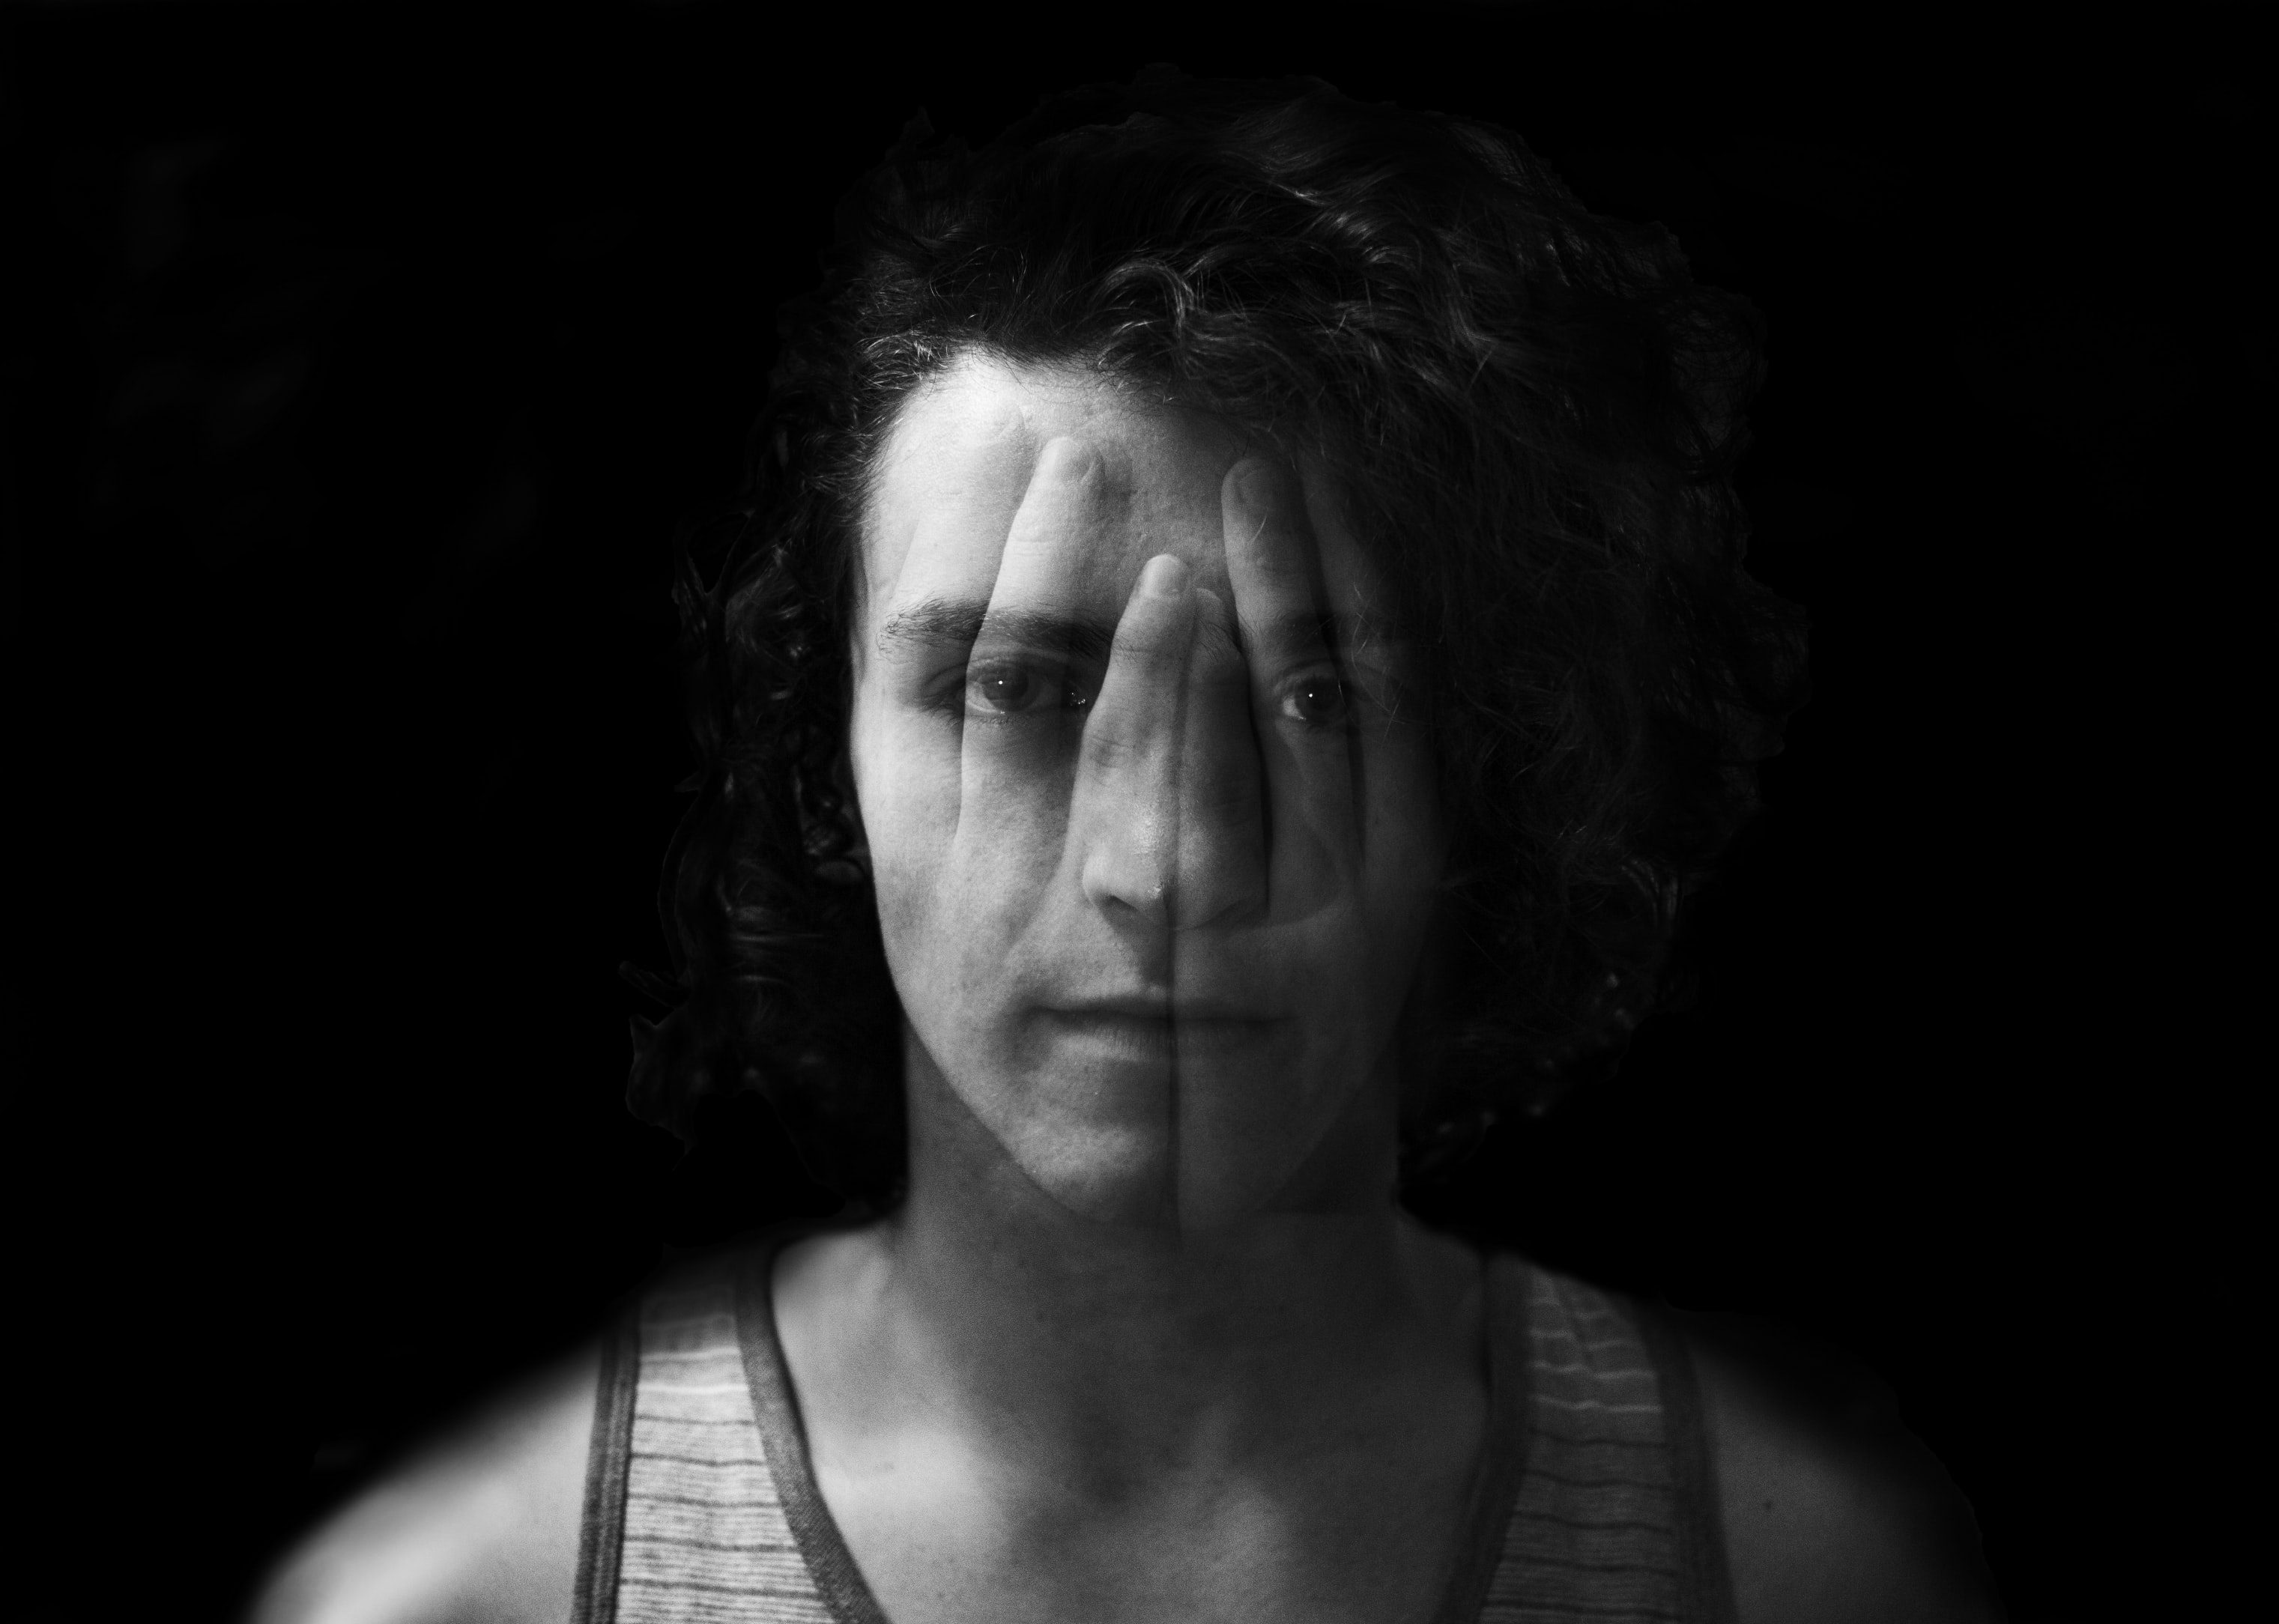 A person with the silhouette of hands on their face, against a black background